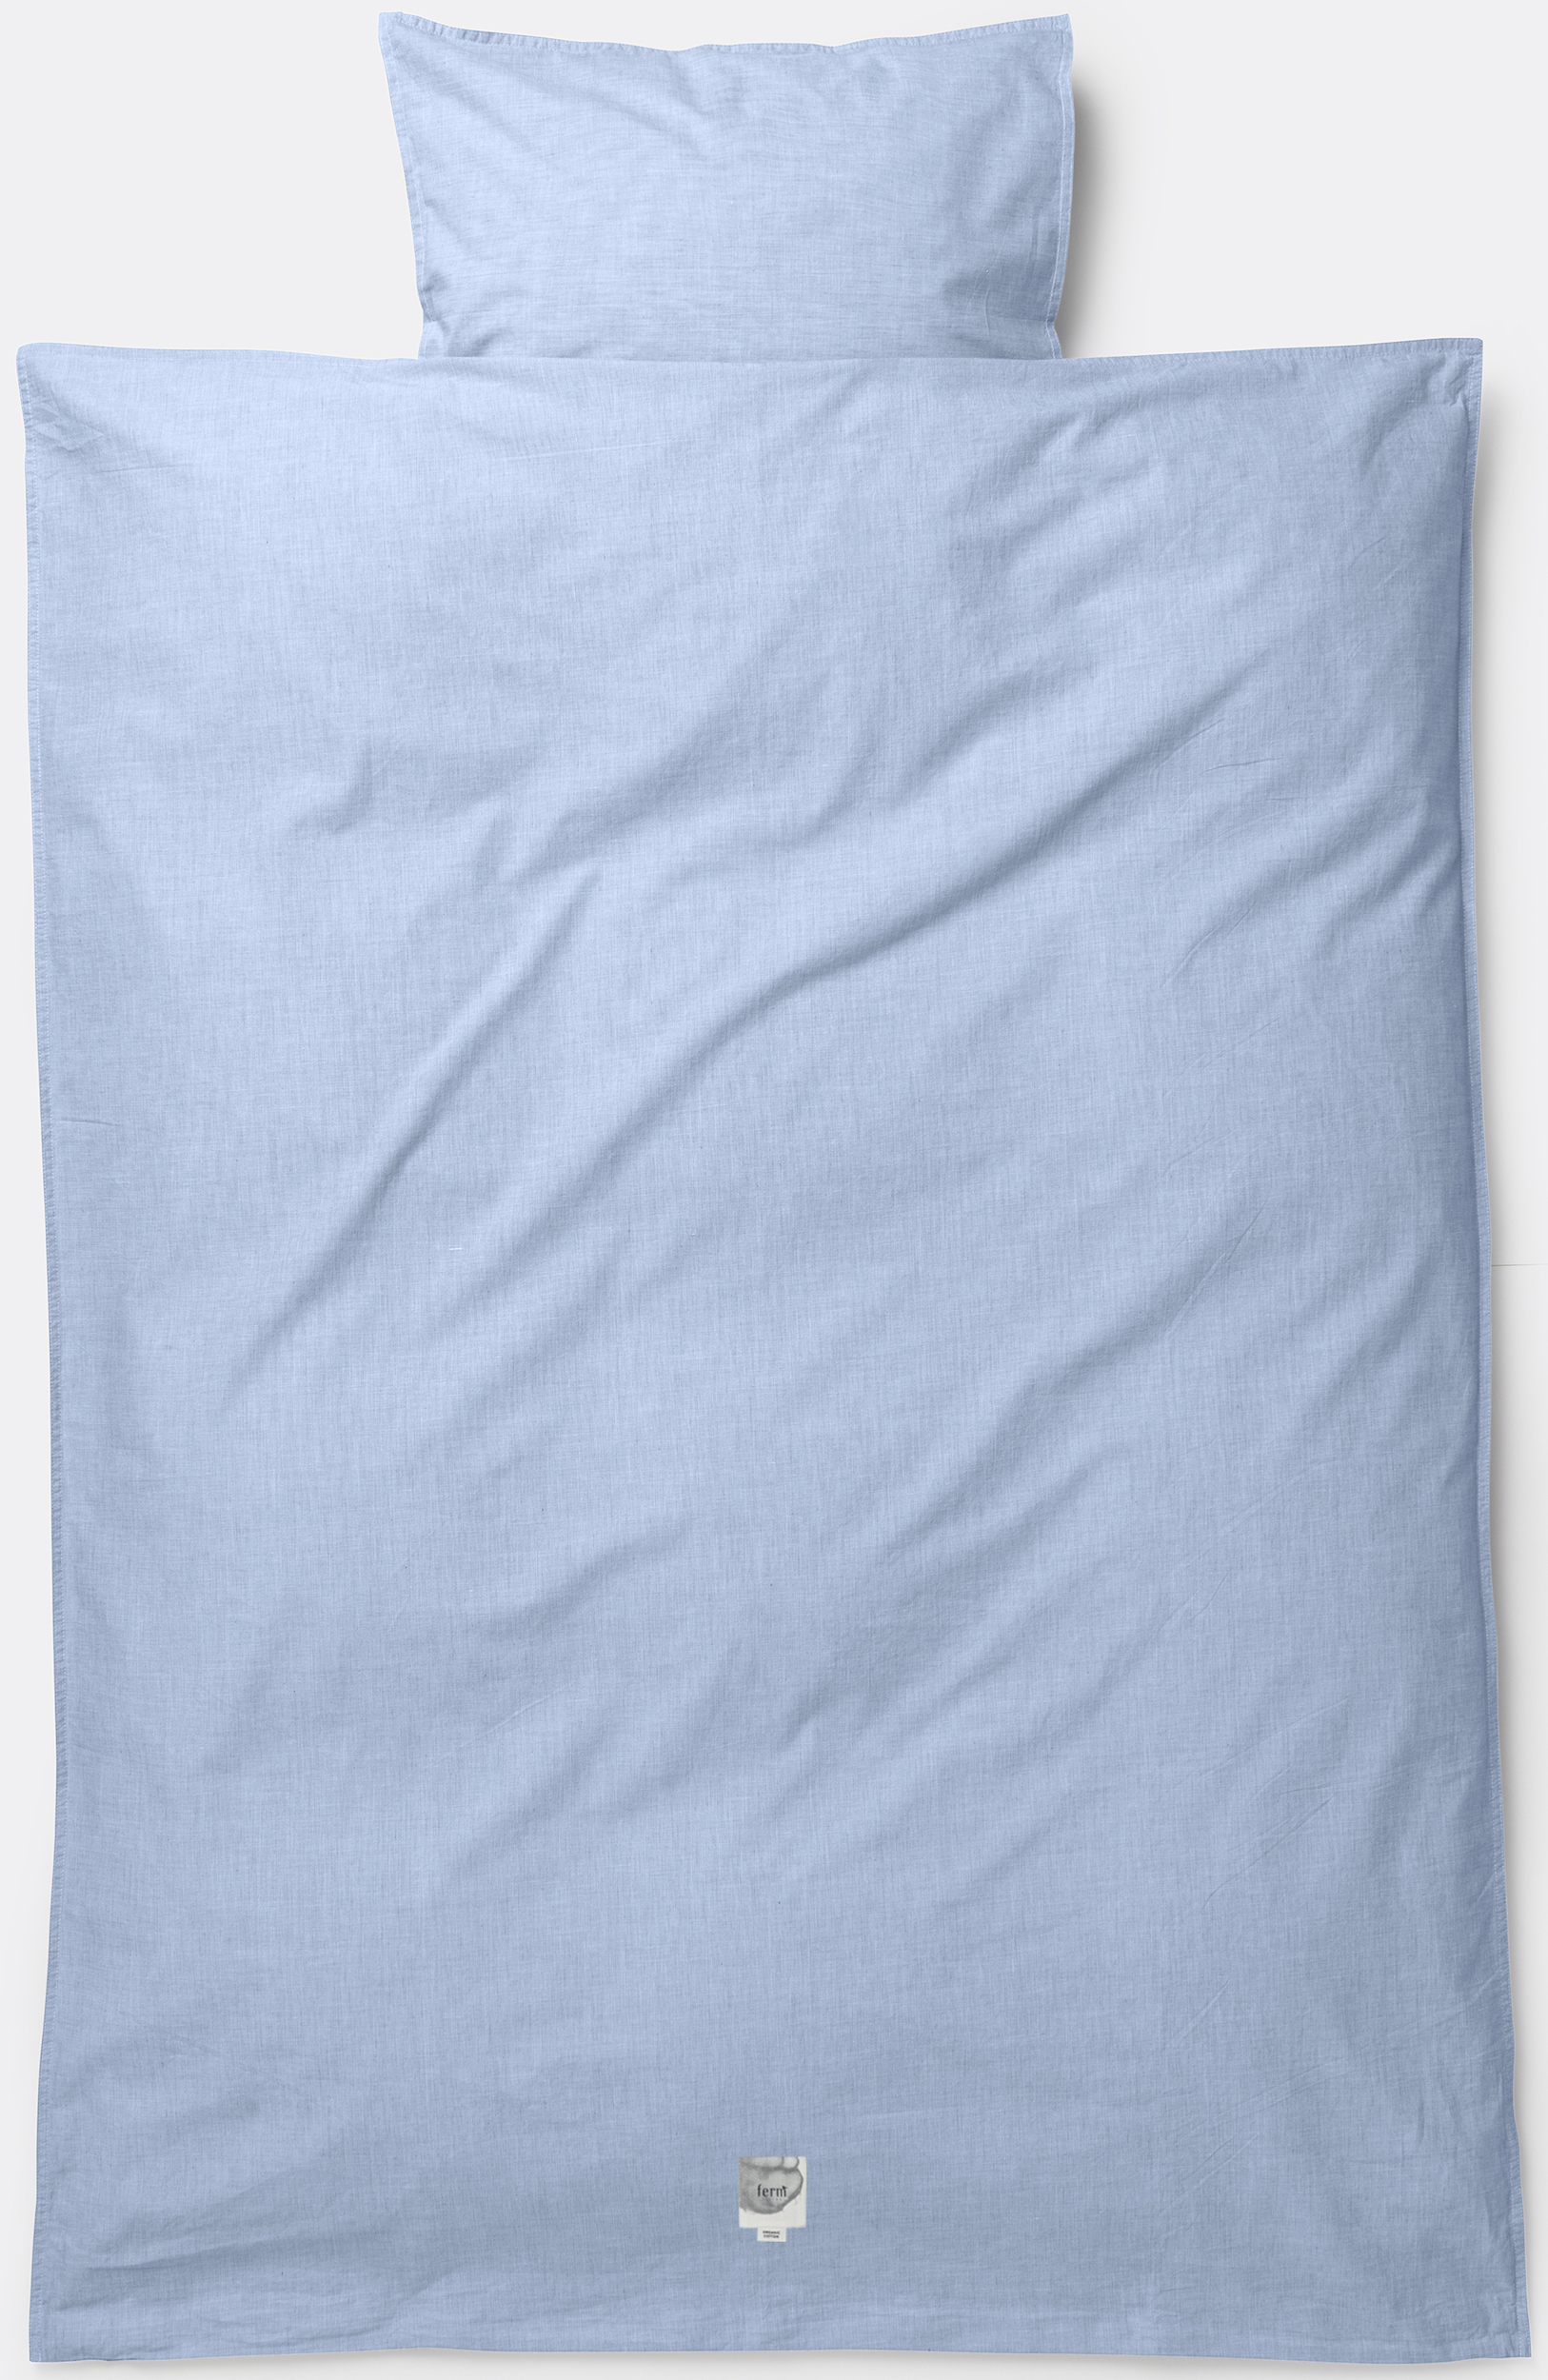 Ferm Living Hush Duvet Covers And Pillowcases Design